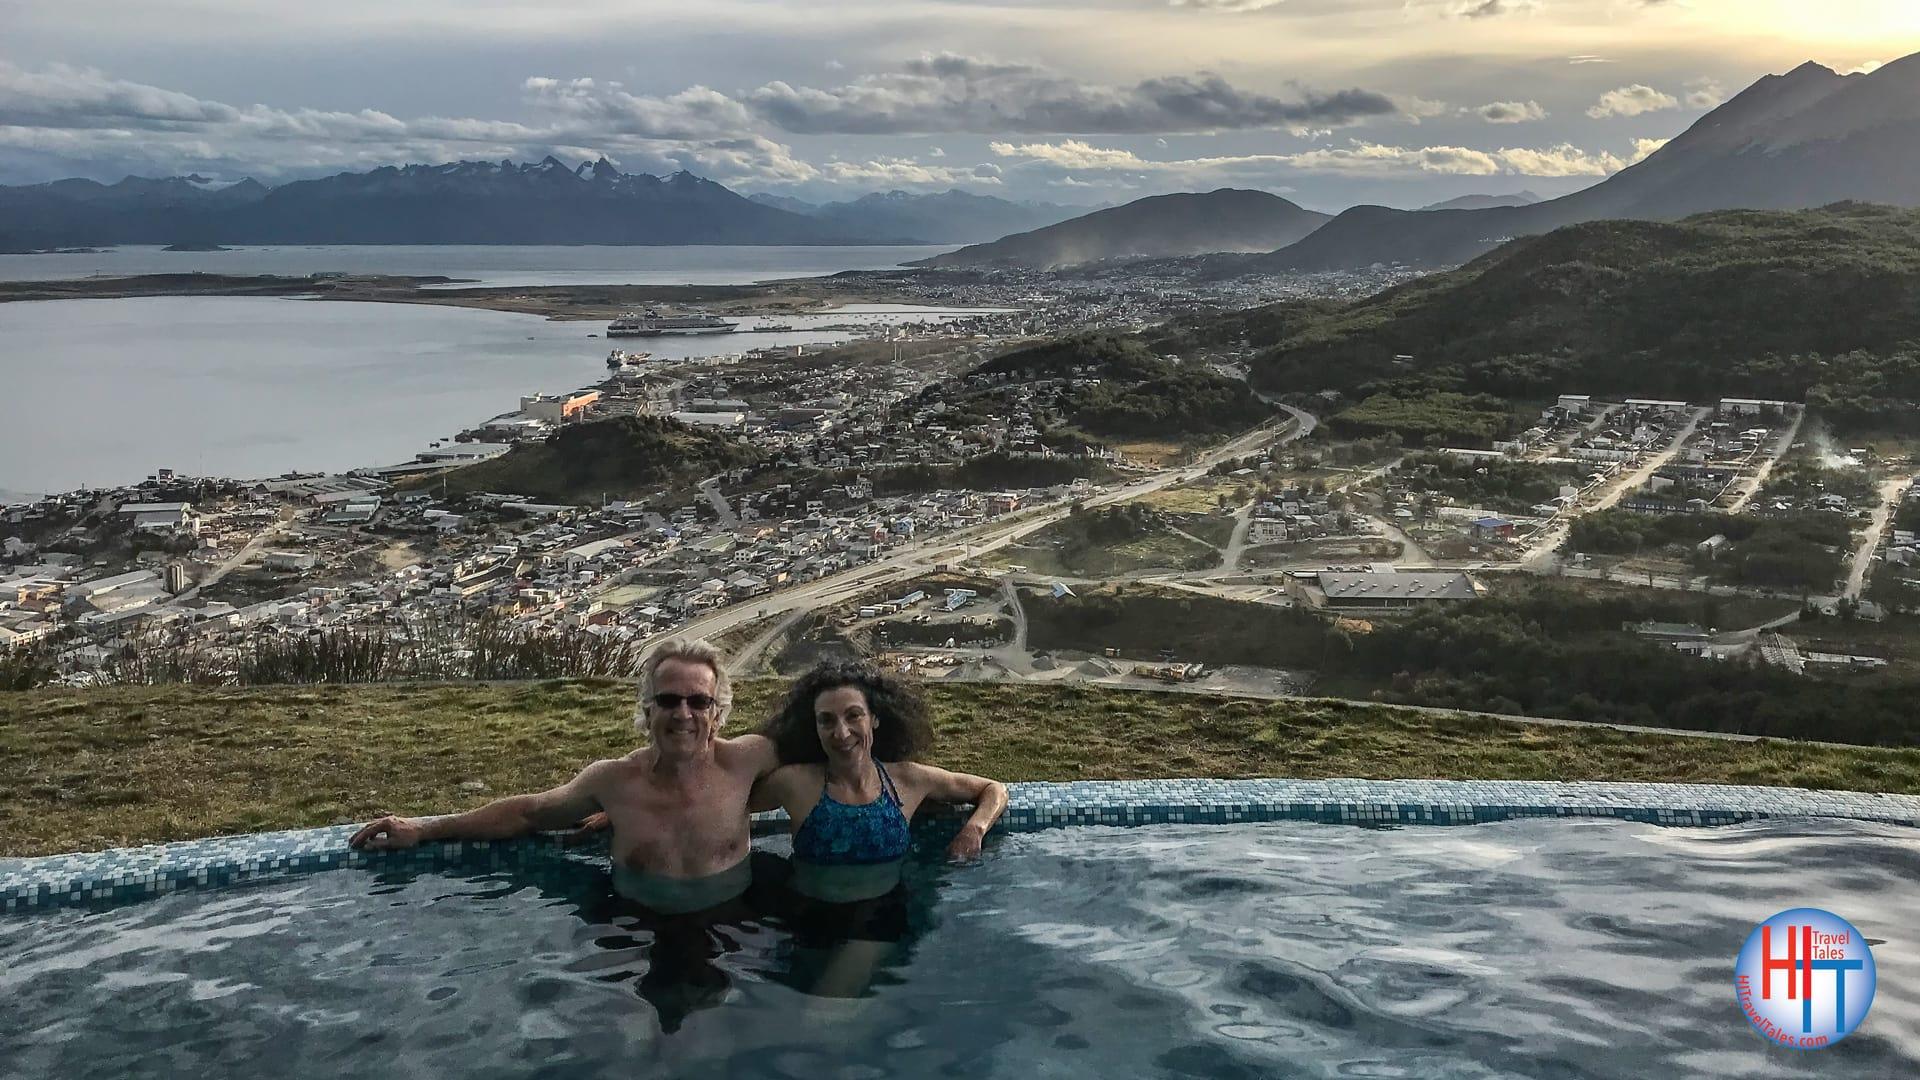 Michael Hodgson And Therese Iknoian In The Infinity Pool At The